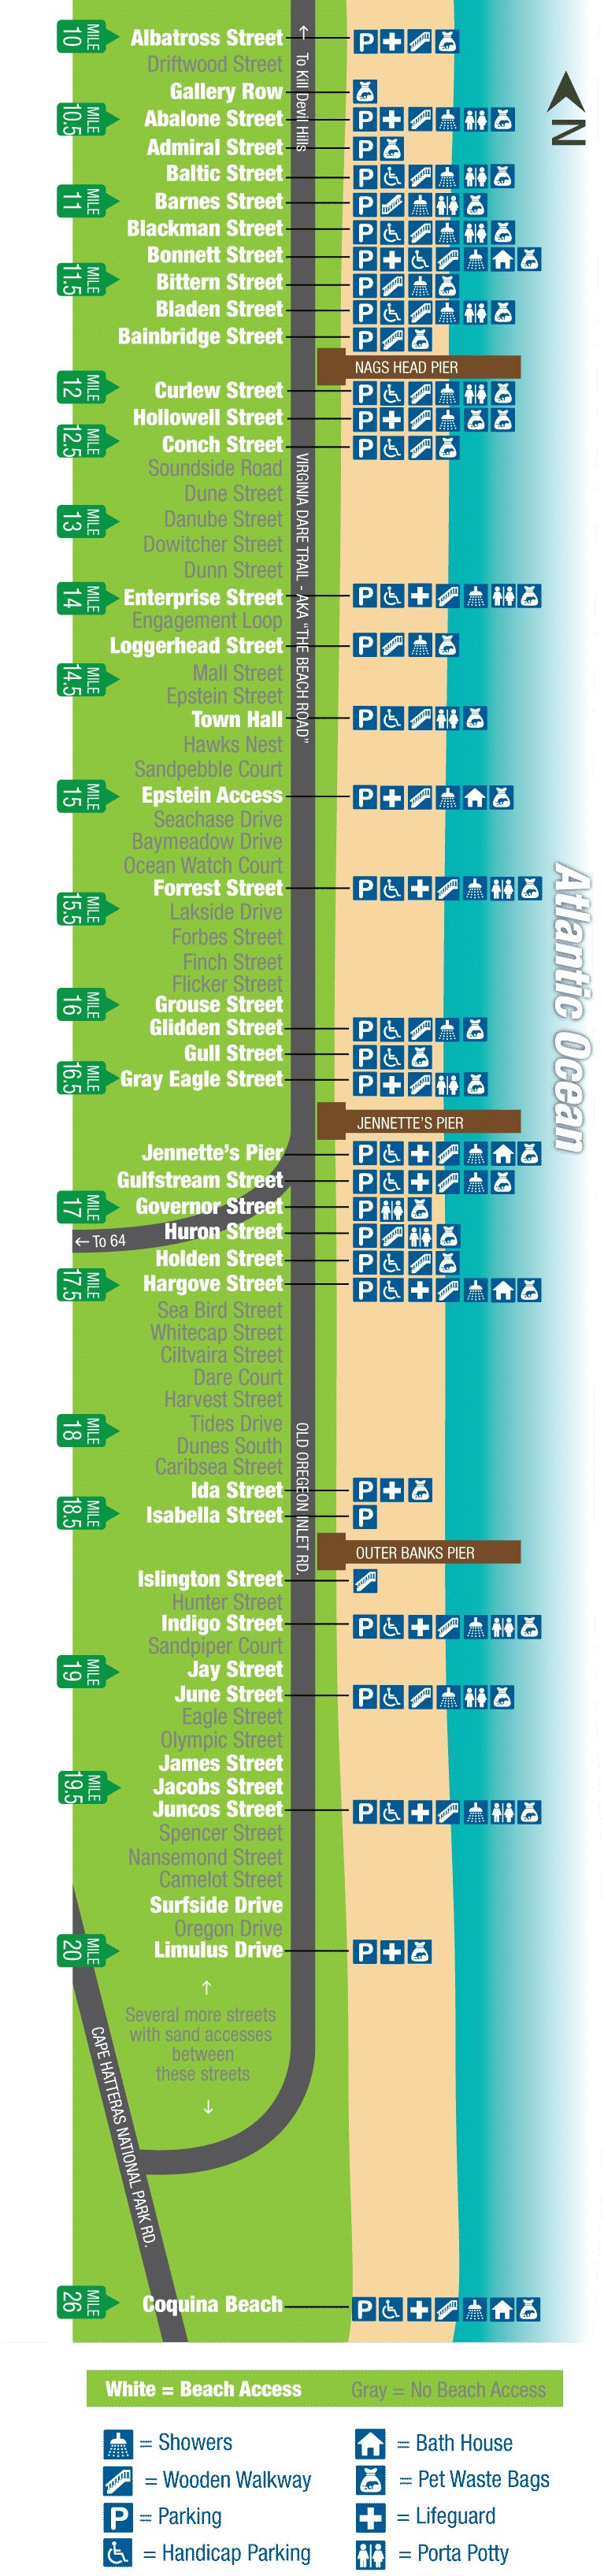 Nags Head Beach Access Map